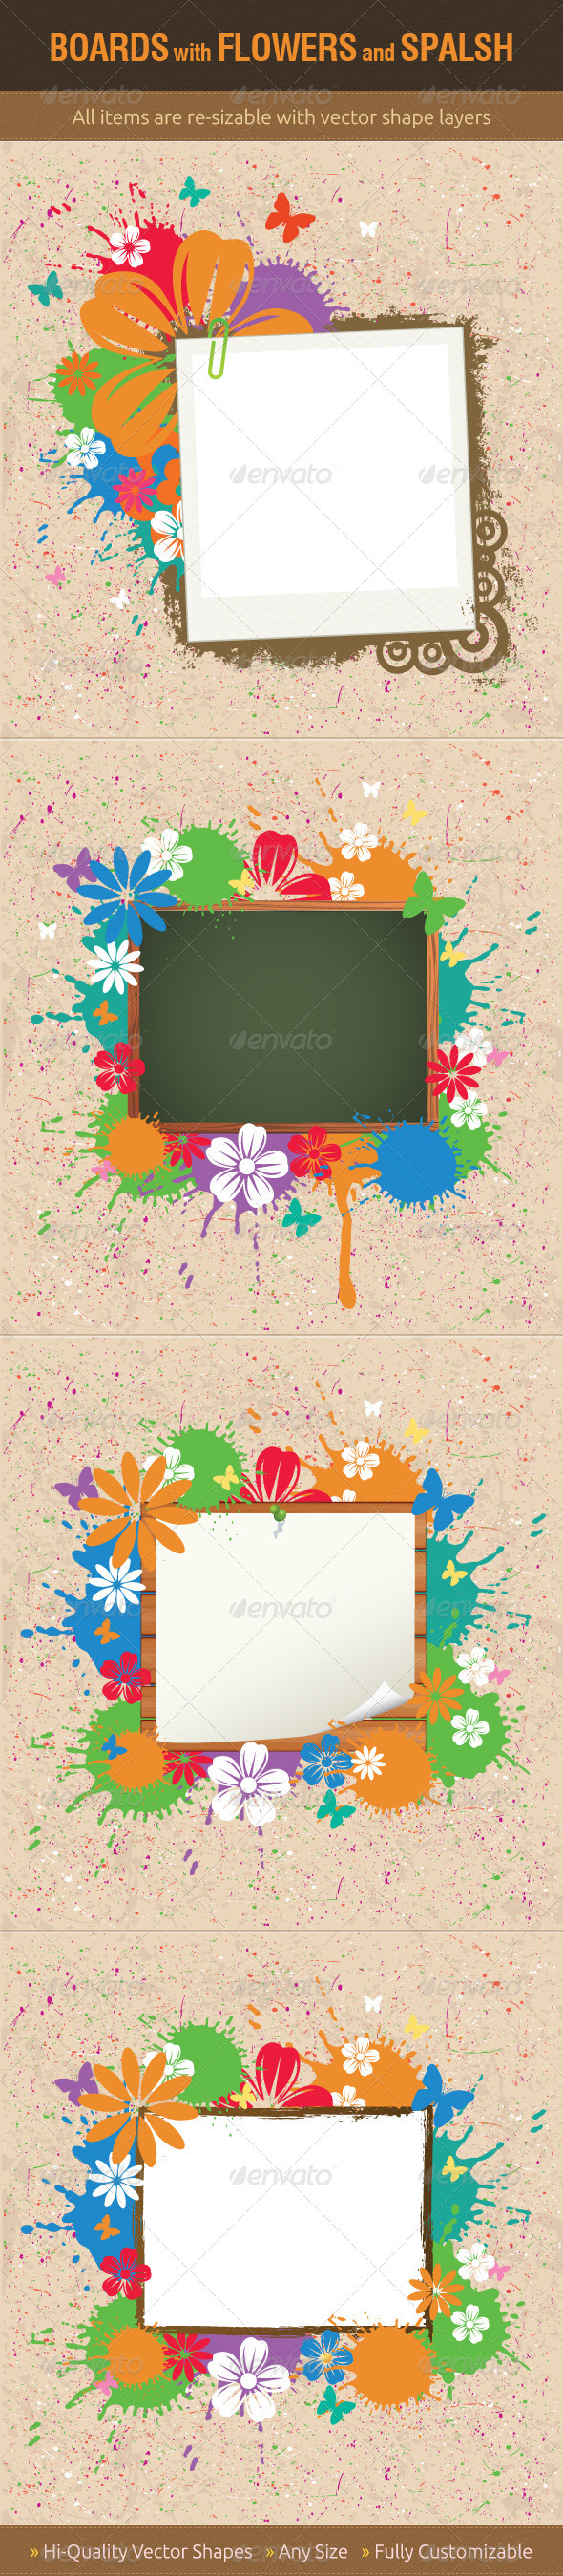 Boards with Flowers and Splash - Backgrounds Decorative